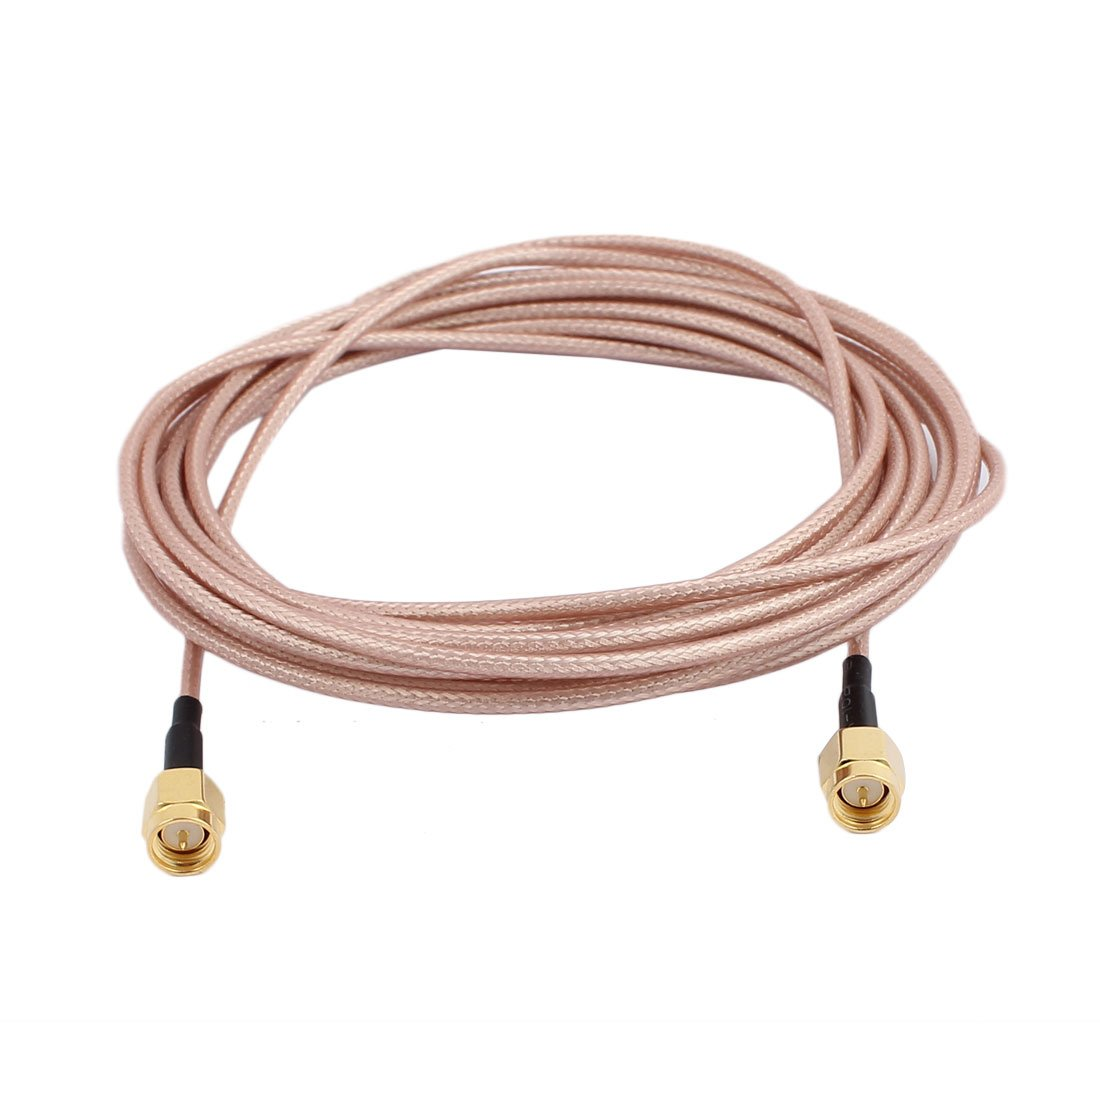 uxcell Gold SMA Male to SMA Male Adapter Connector RG316 Coaxial Cable for Satellite Television 10Feet